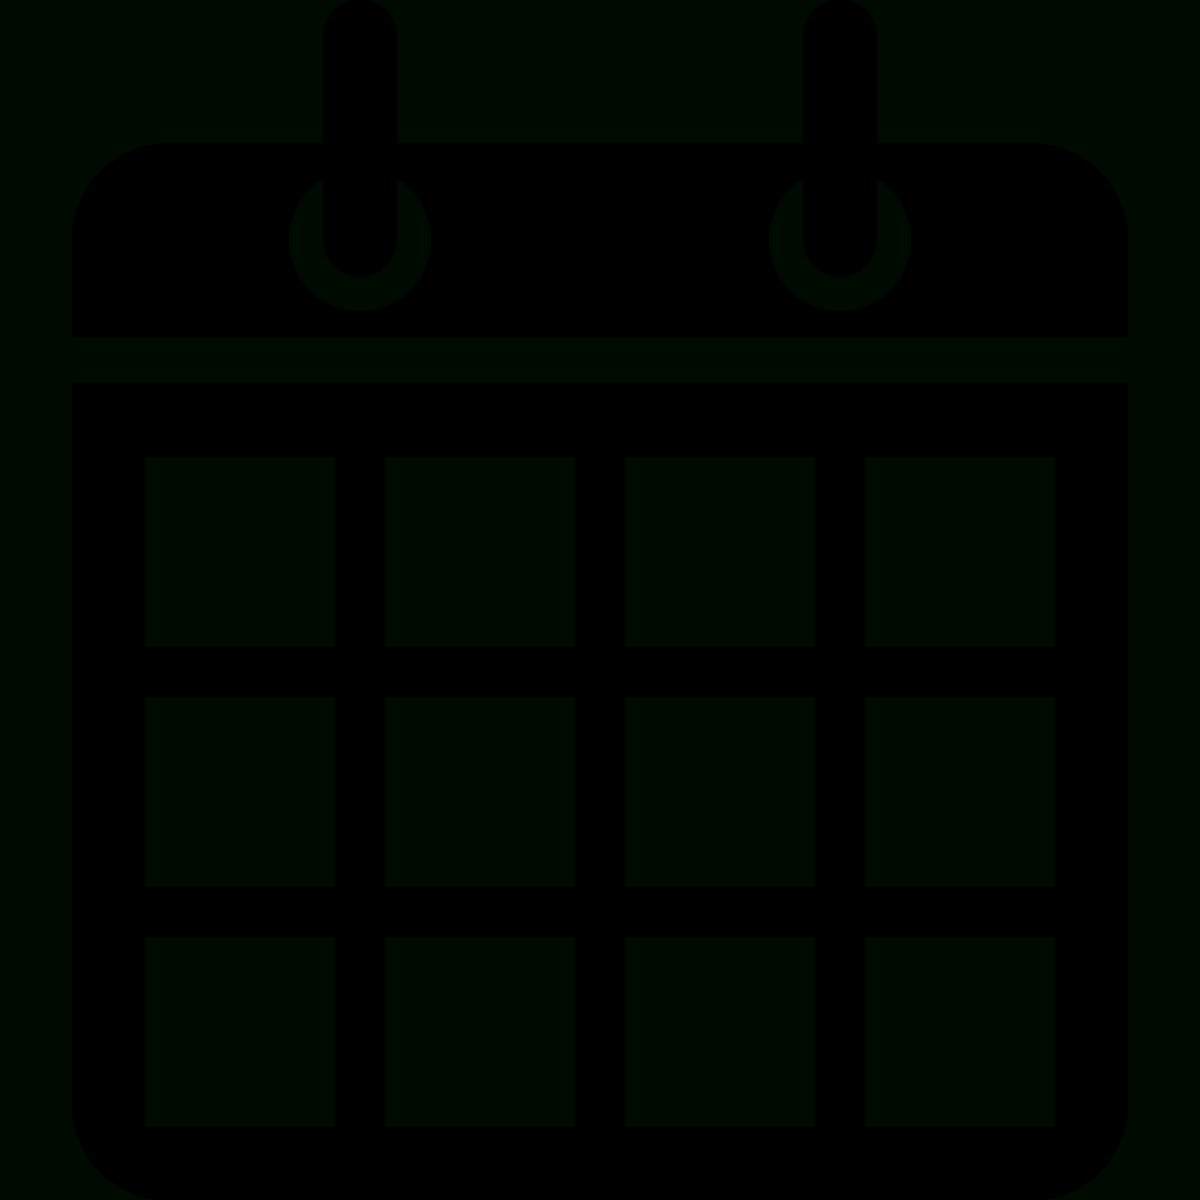 Calendar .Ico Png Transparent Background, Free Download with regard to Calendar Icon Vector Png